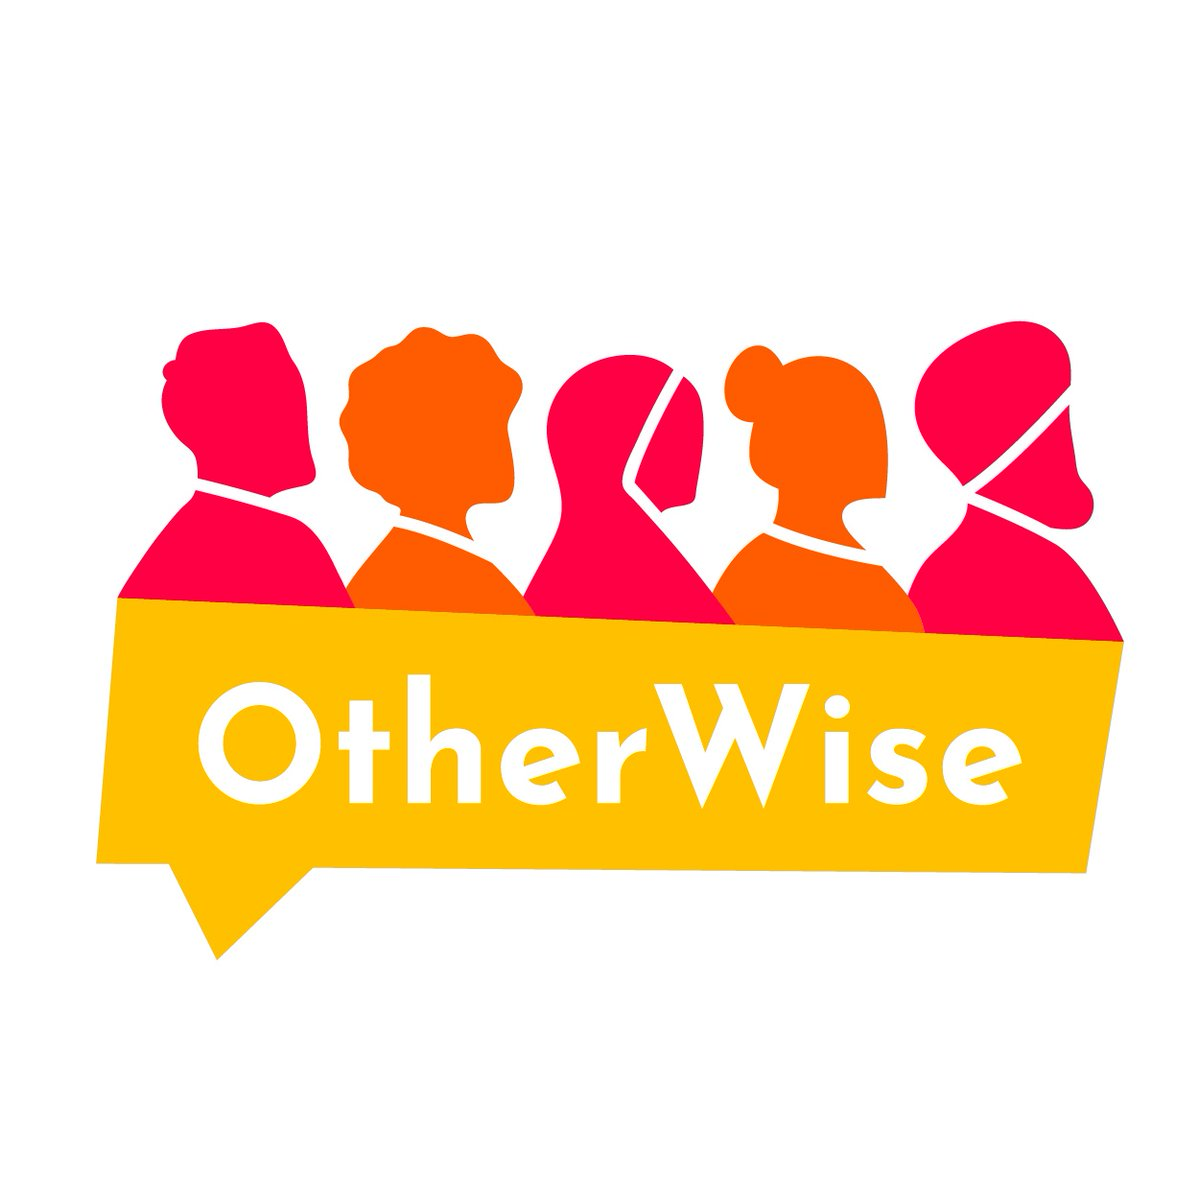 OtherWise - A variety podcast dedicated to empowering diverse communities living on Treaty 6 territory by sharing stories of their lived experiences.